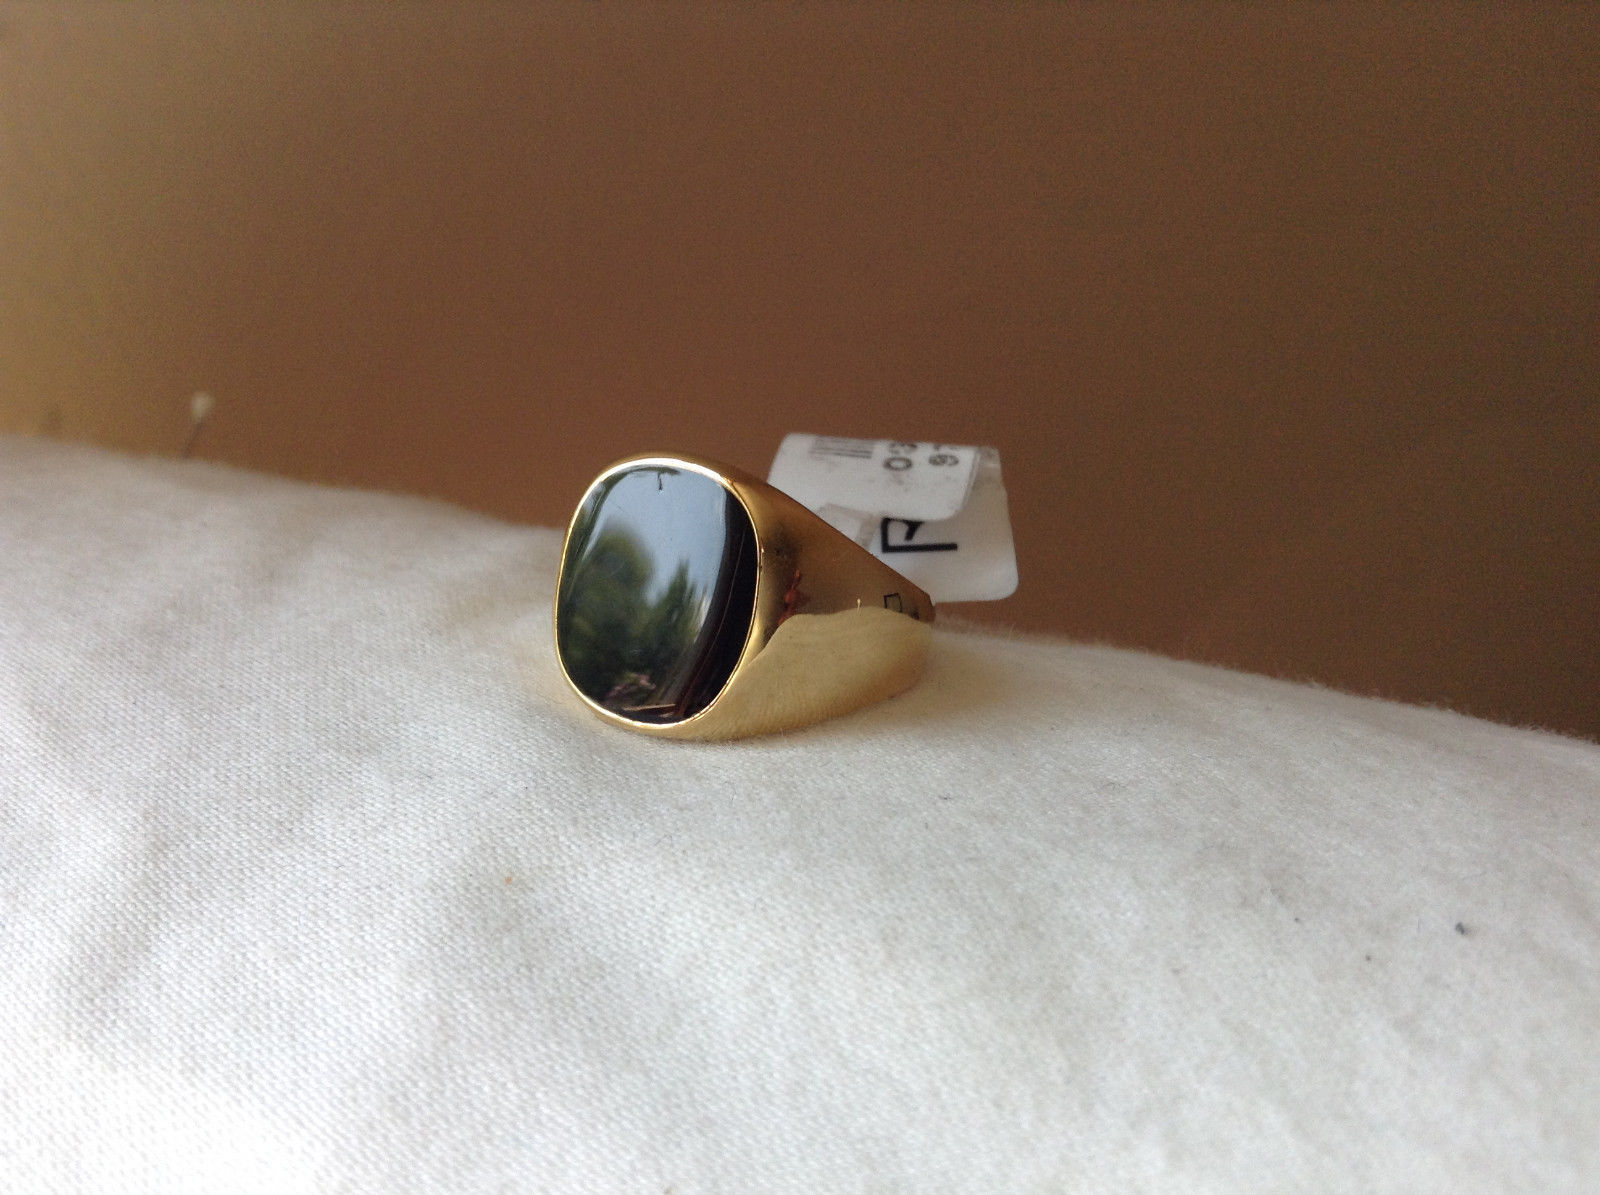 Gold Tone Square Black Stone Ring Size 8 and 10 Sold Separately